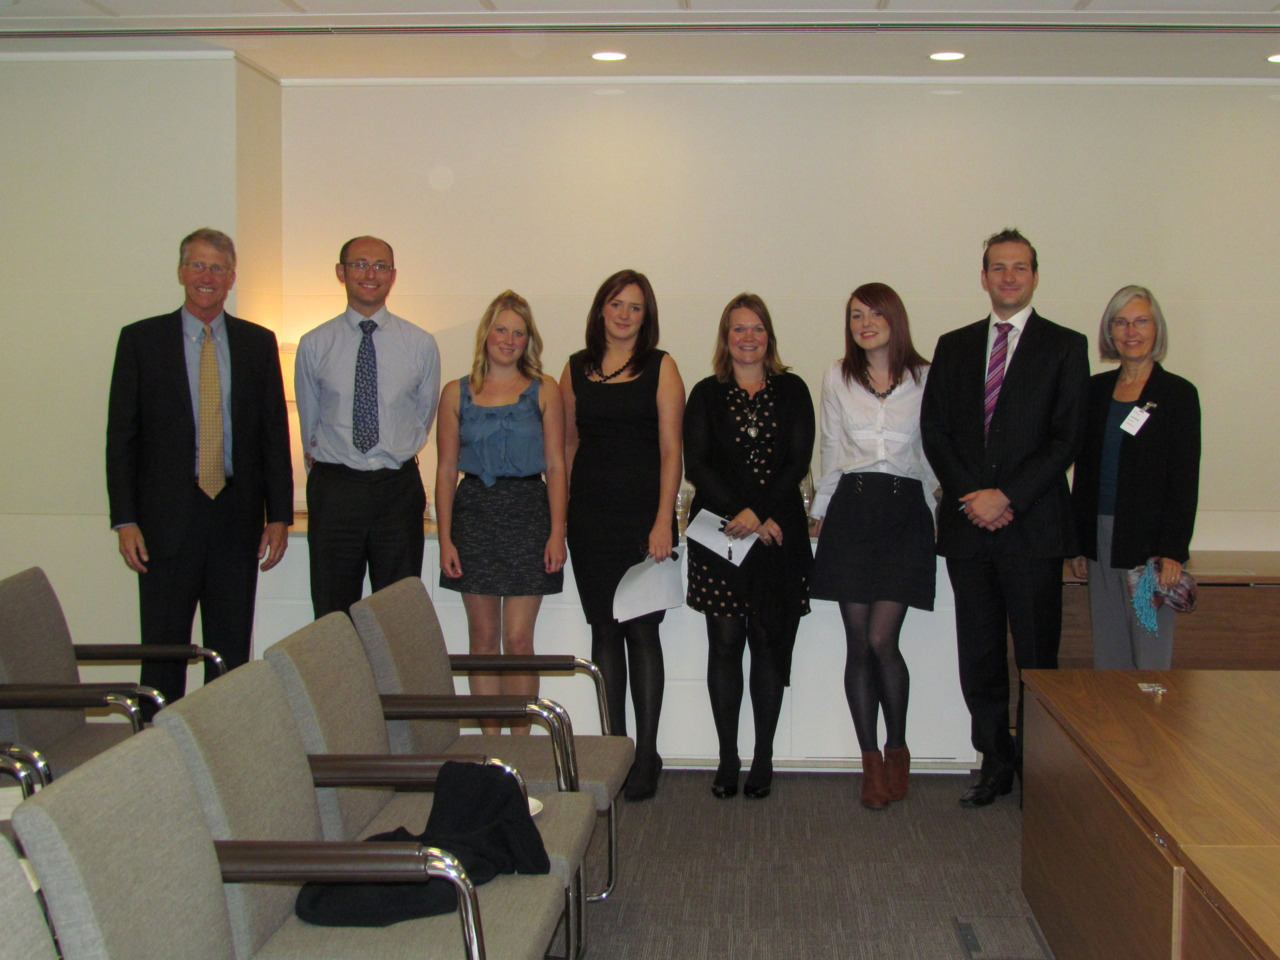 HTF Founder and Executive Director, Rick Barger (Far Left) and his wife Harriet (Far Right), at Linklaters global headquarters in London, October 2011. Next to Rick Barger is Matthew Sparkes, Global Head of Corporate Responsibility.